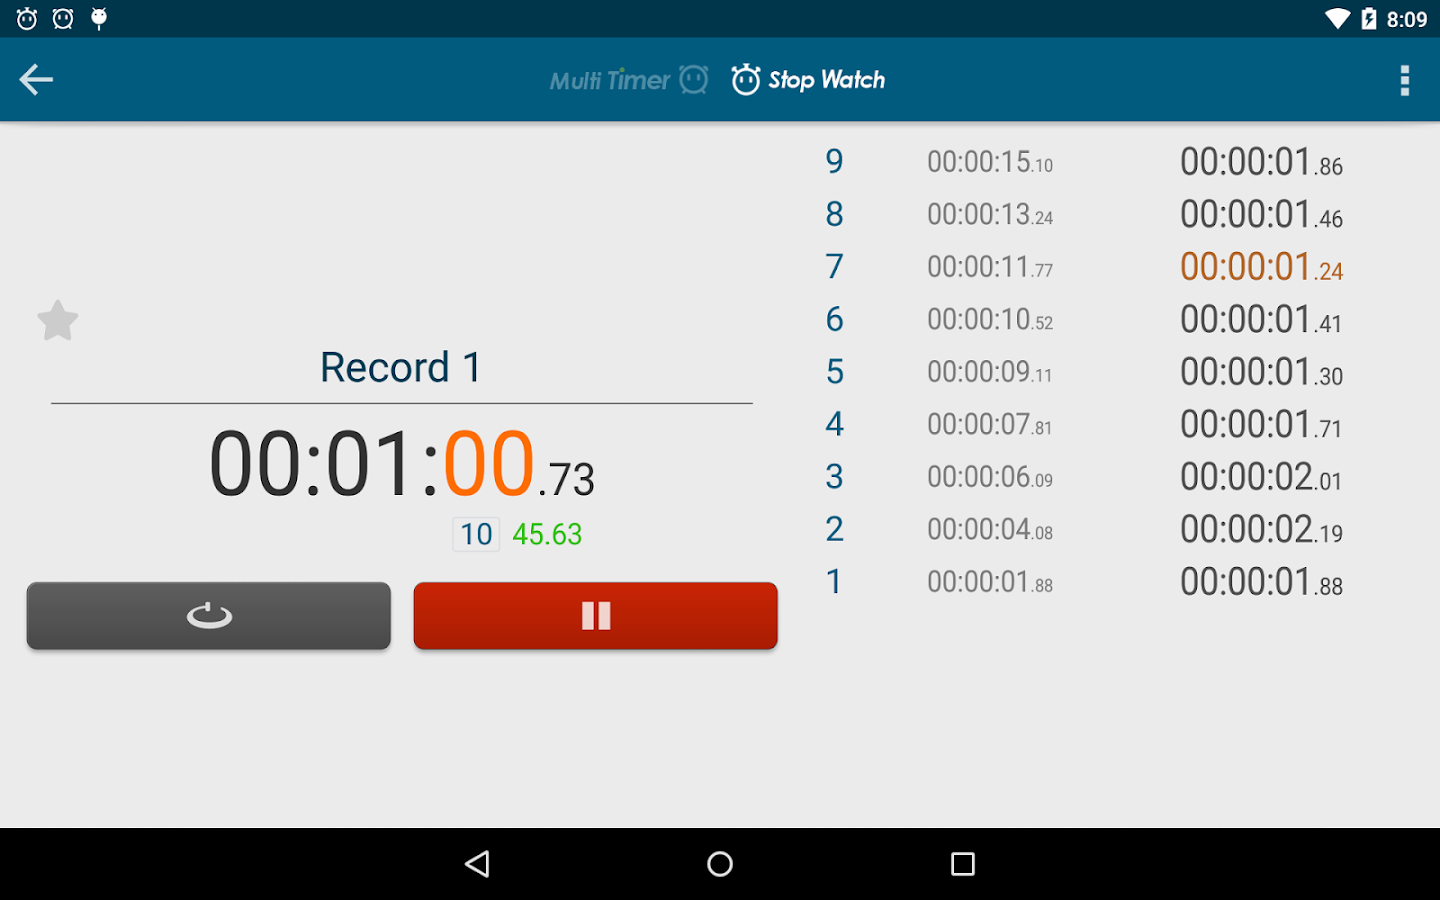 Multi Timer StopWatch Screenshot 15